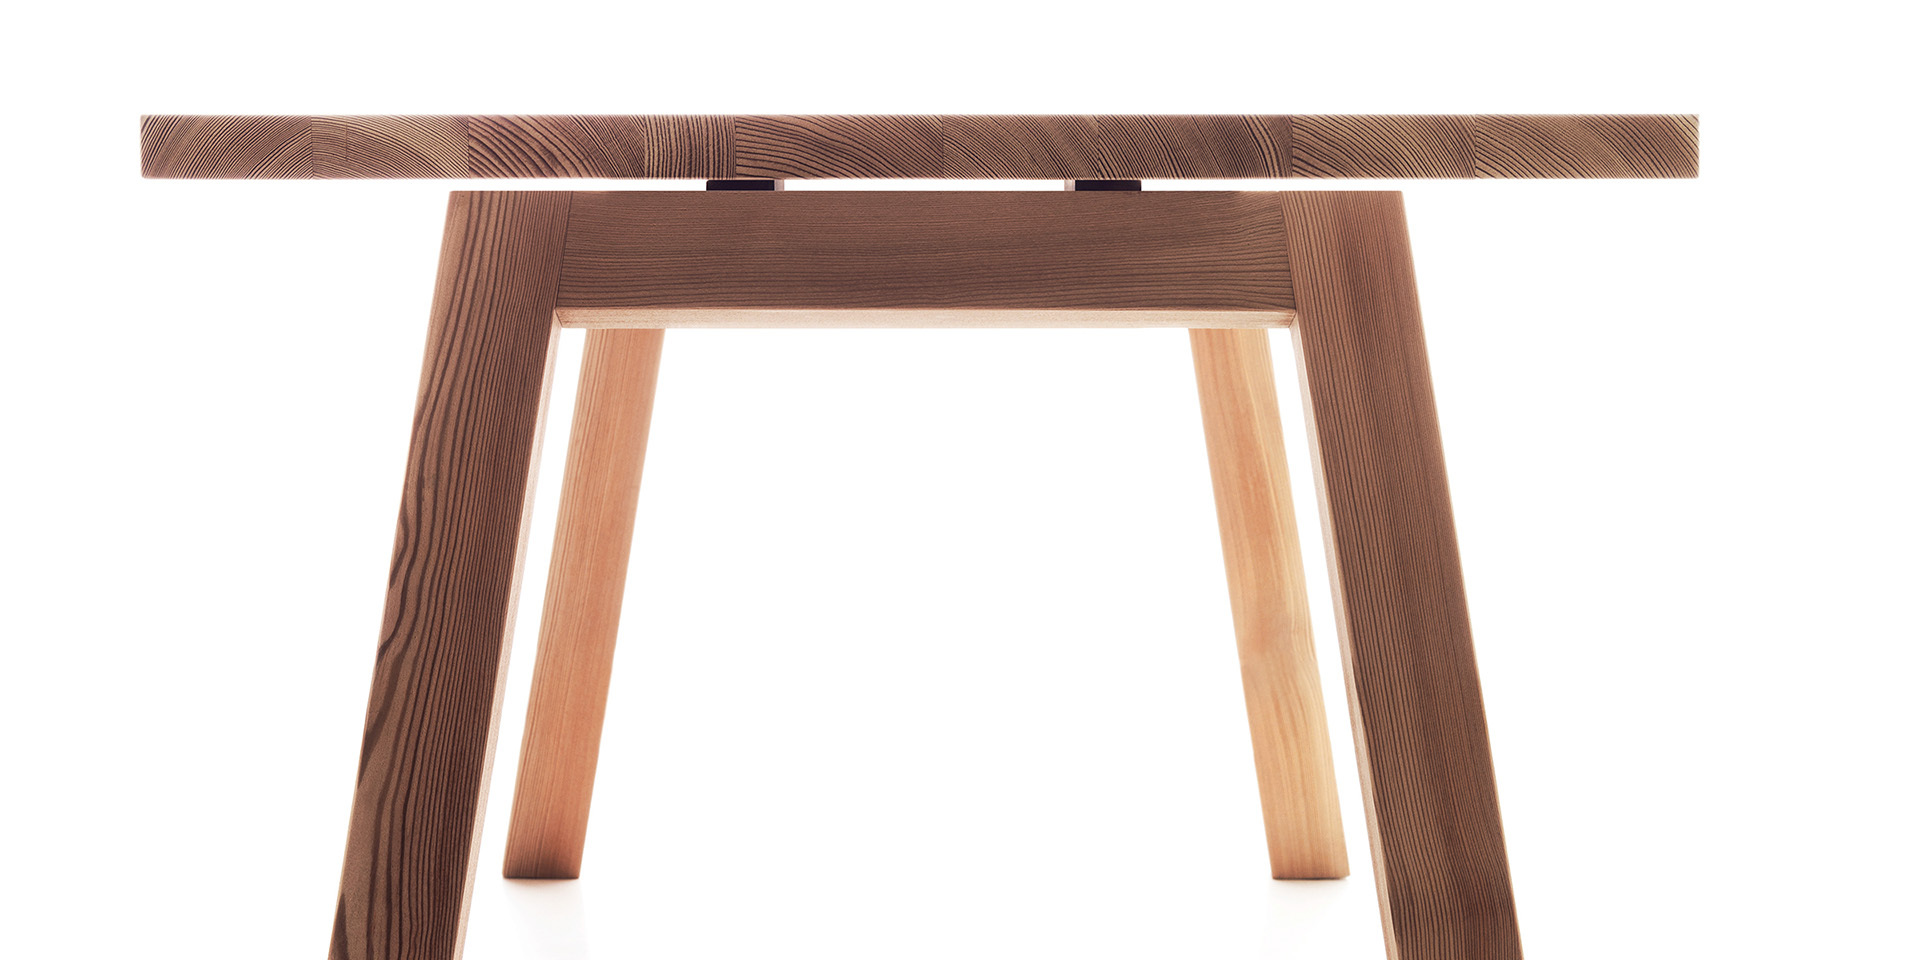 Accento table - natural larch